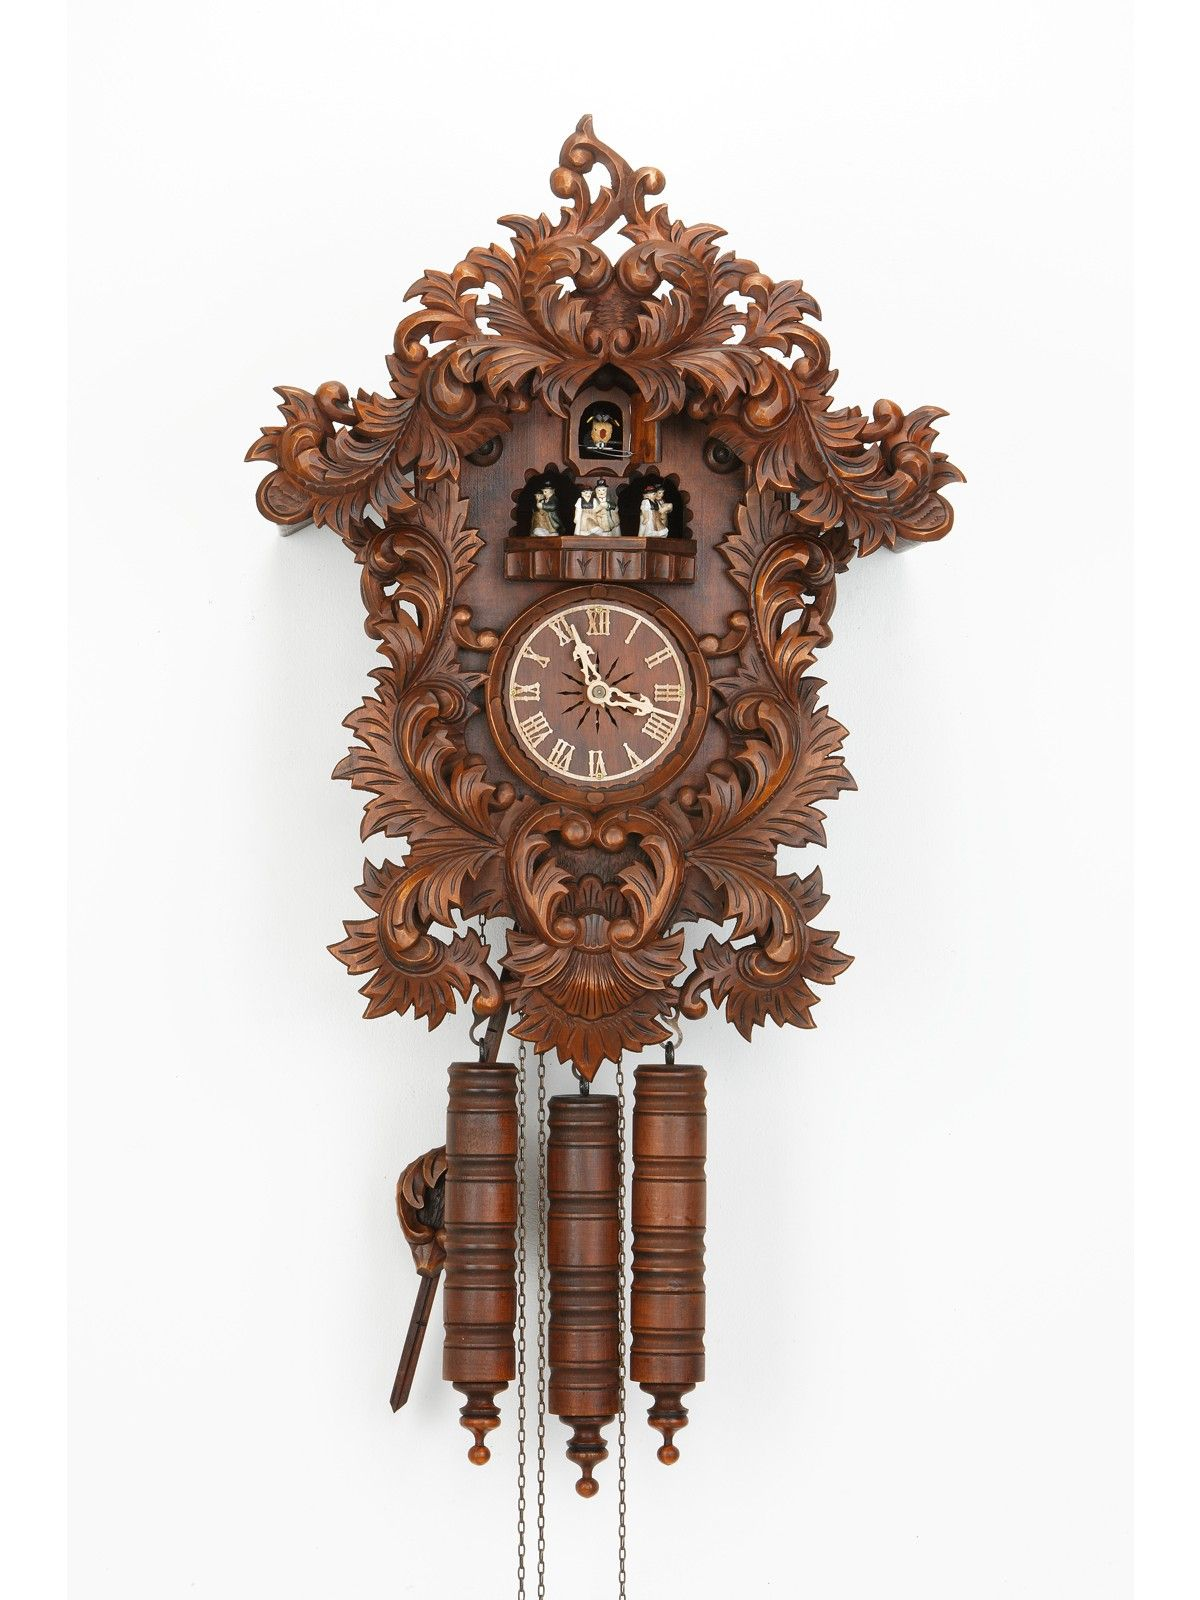 Cute Cuckoo Clock For Home Accessories Ideas: Exclusive Cuckoo Clock In Brown Made Of Wood With Wonderful Carving For Home Accessories Ideas